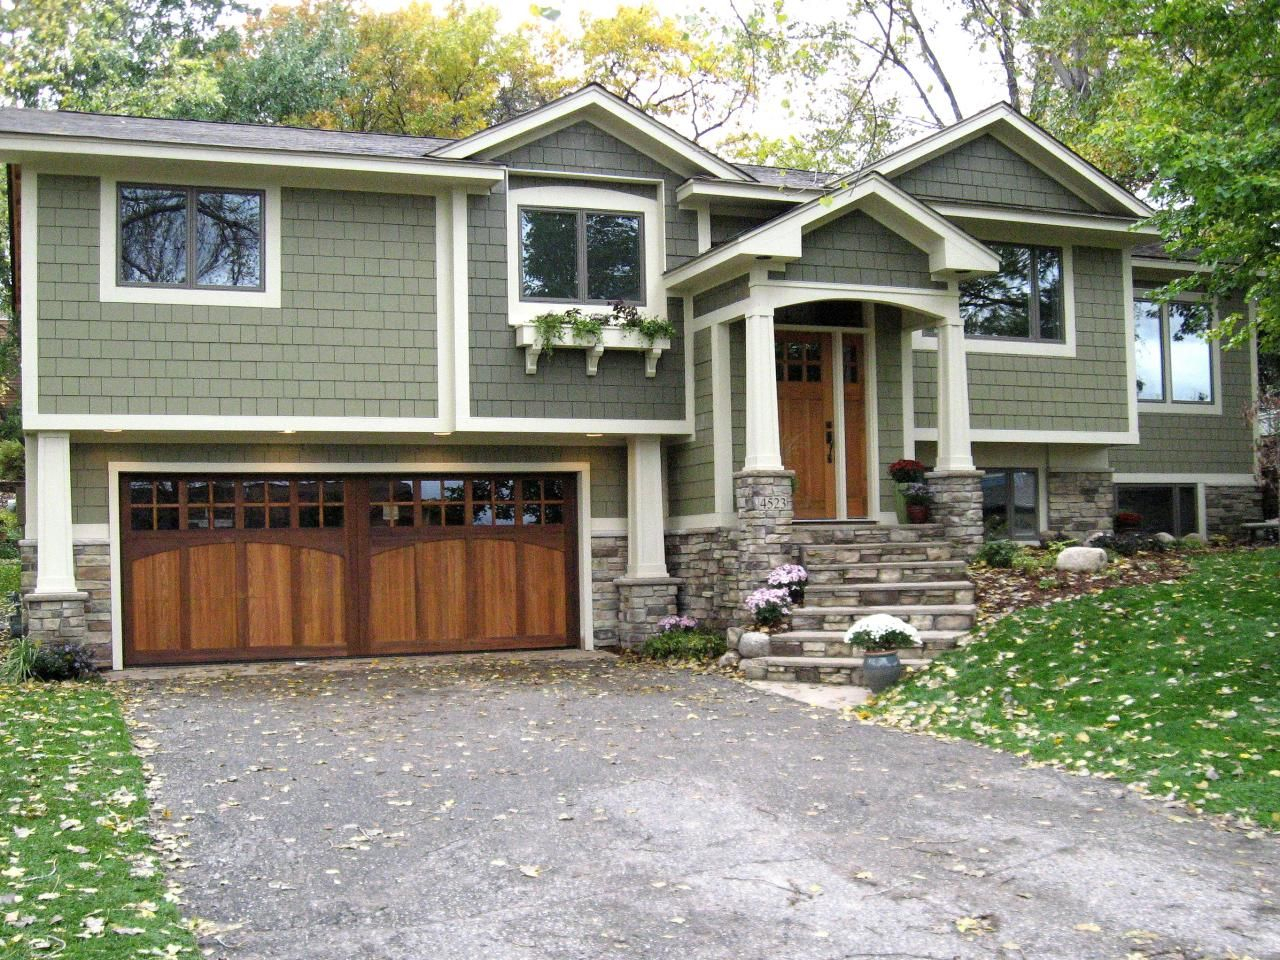 10 Awesome Landscaping Ideas For Split Level Homes tri level homes split level homes with front porches exteriors 2020